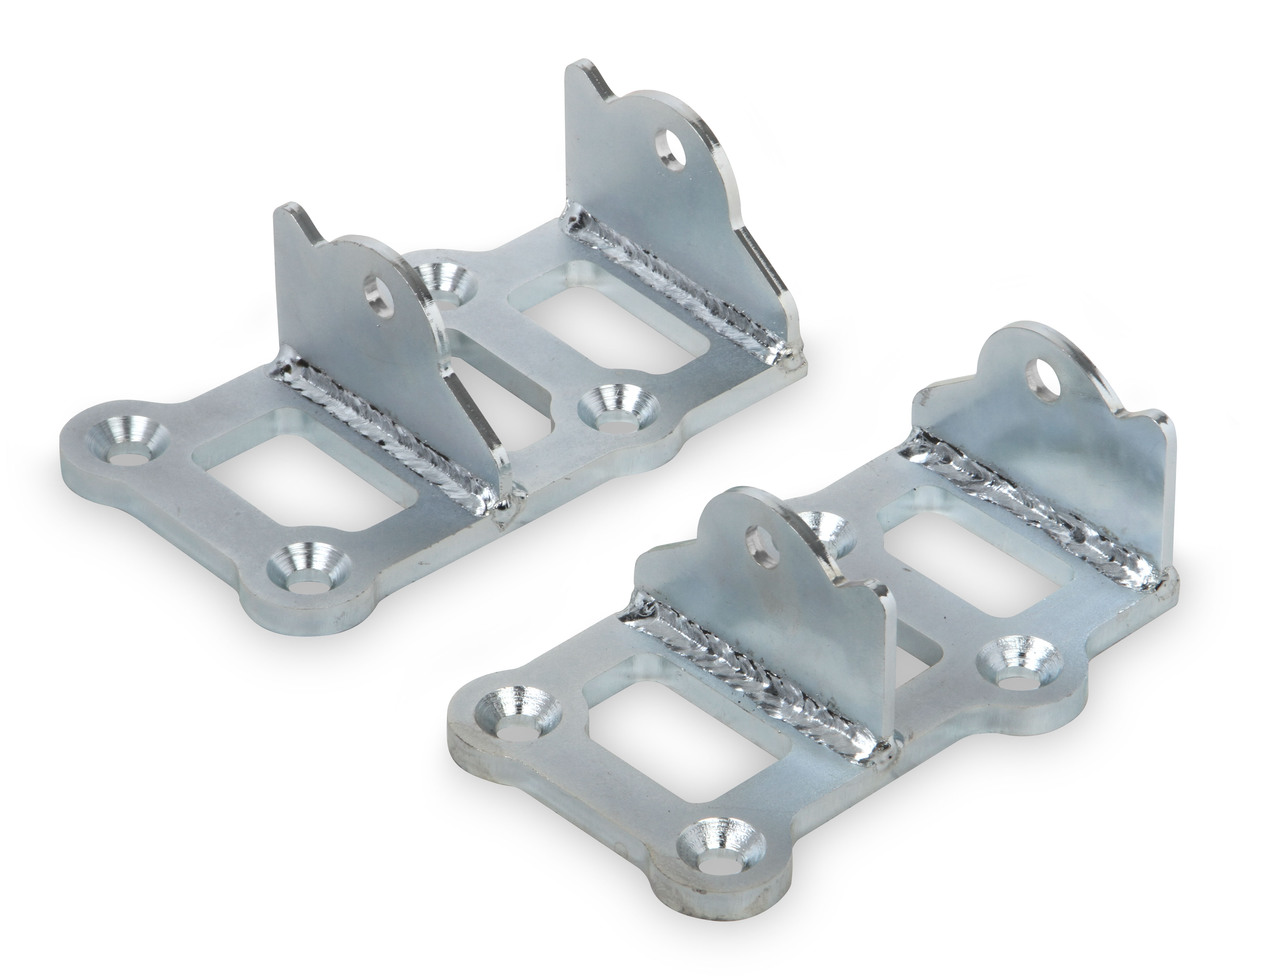 HOOKER MOTOR MOUNTS 1978-88 GM A/G-Body LS-Swap Engine Mount Brackets